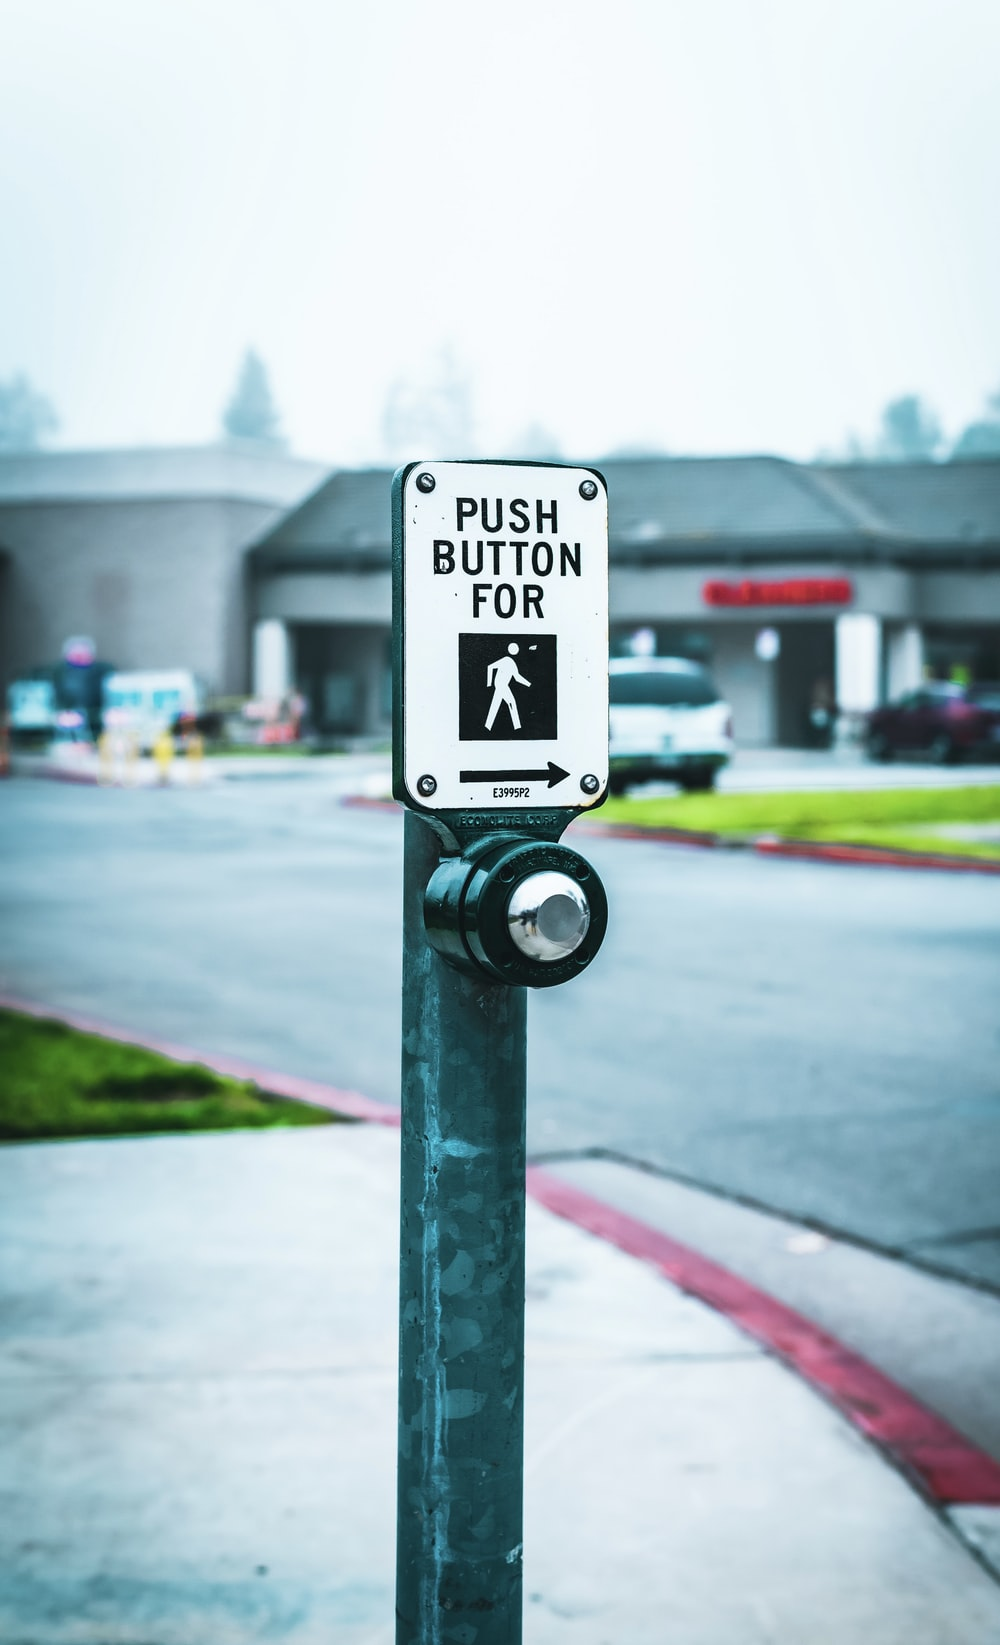 push button for walk post beside the road during daytime